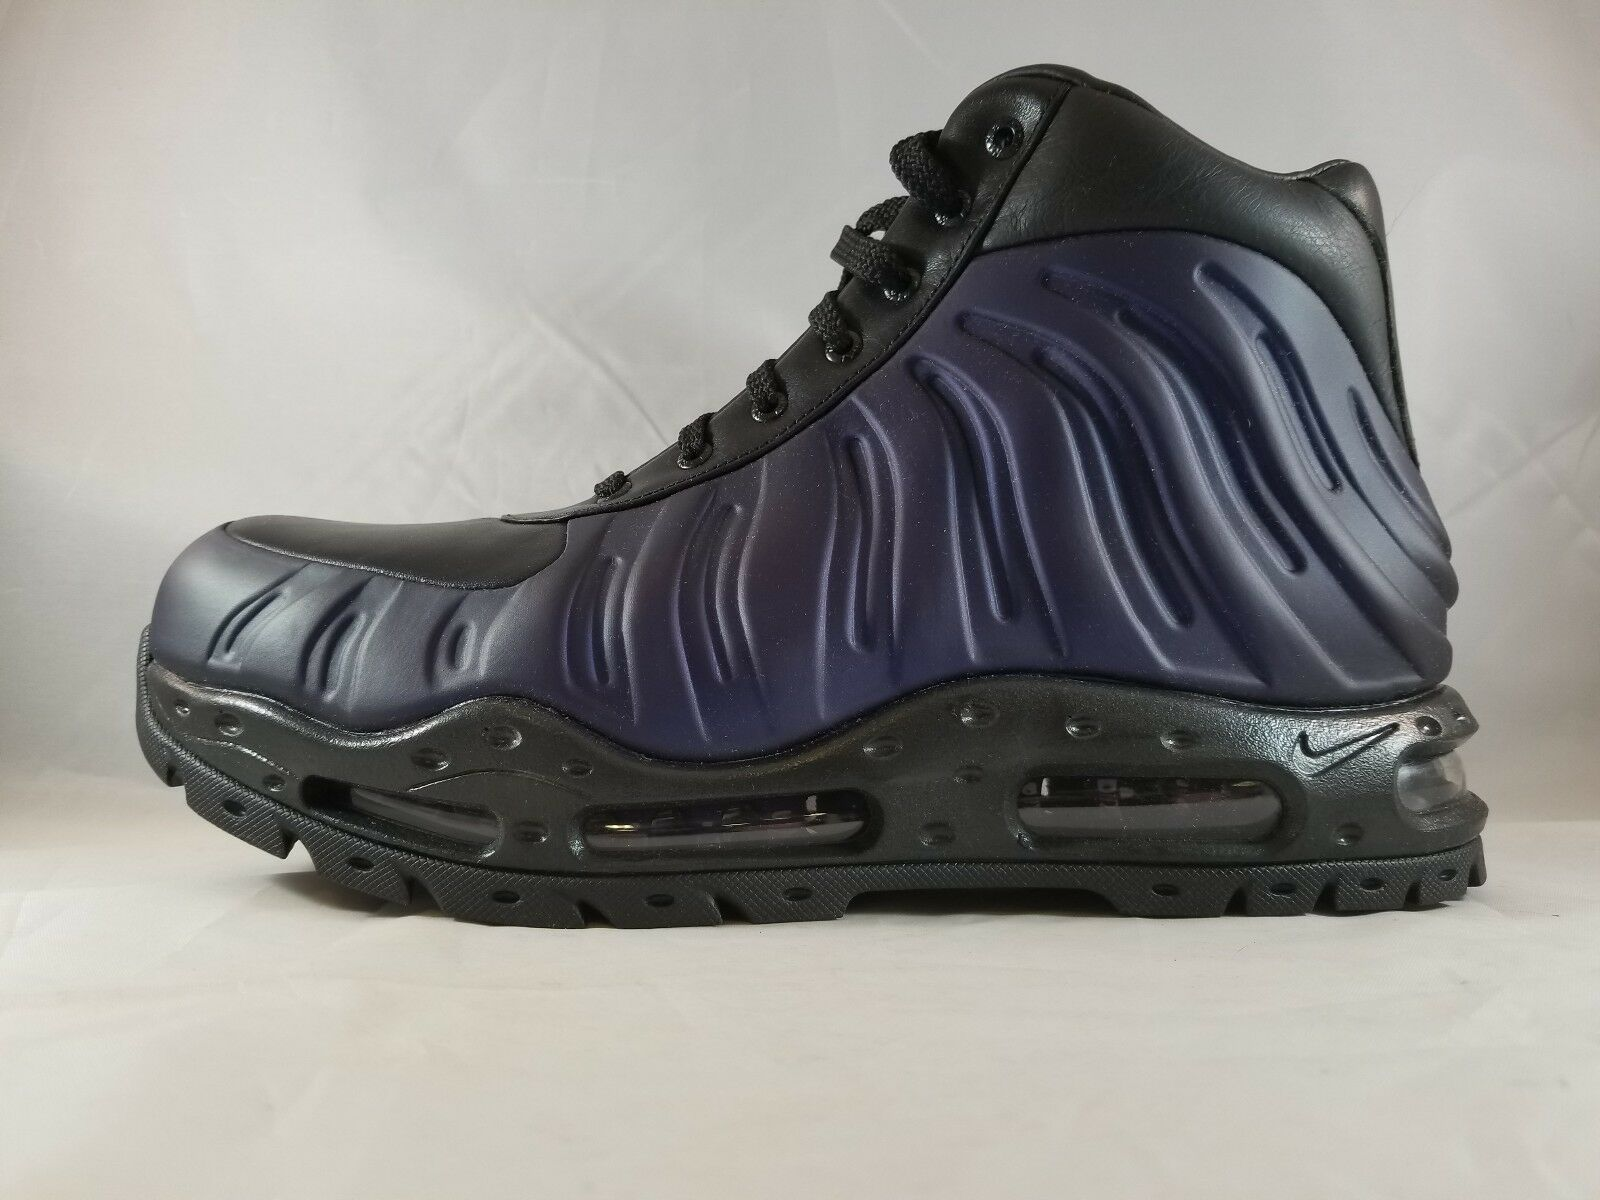 Nike Air Max Foamdome Men's Boots 843749 500 Size 10